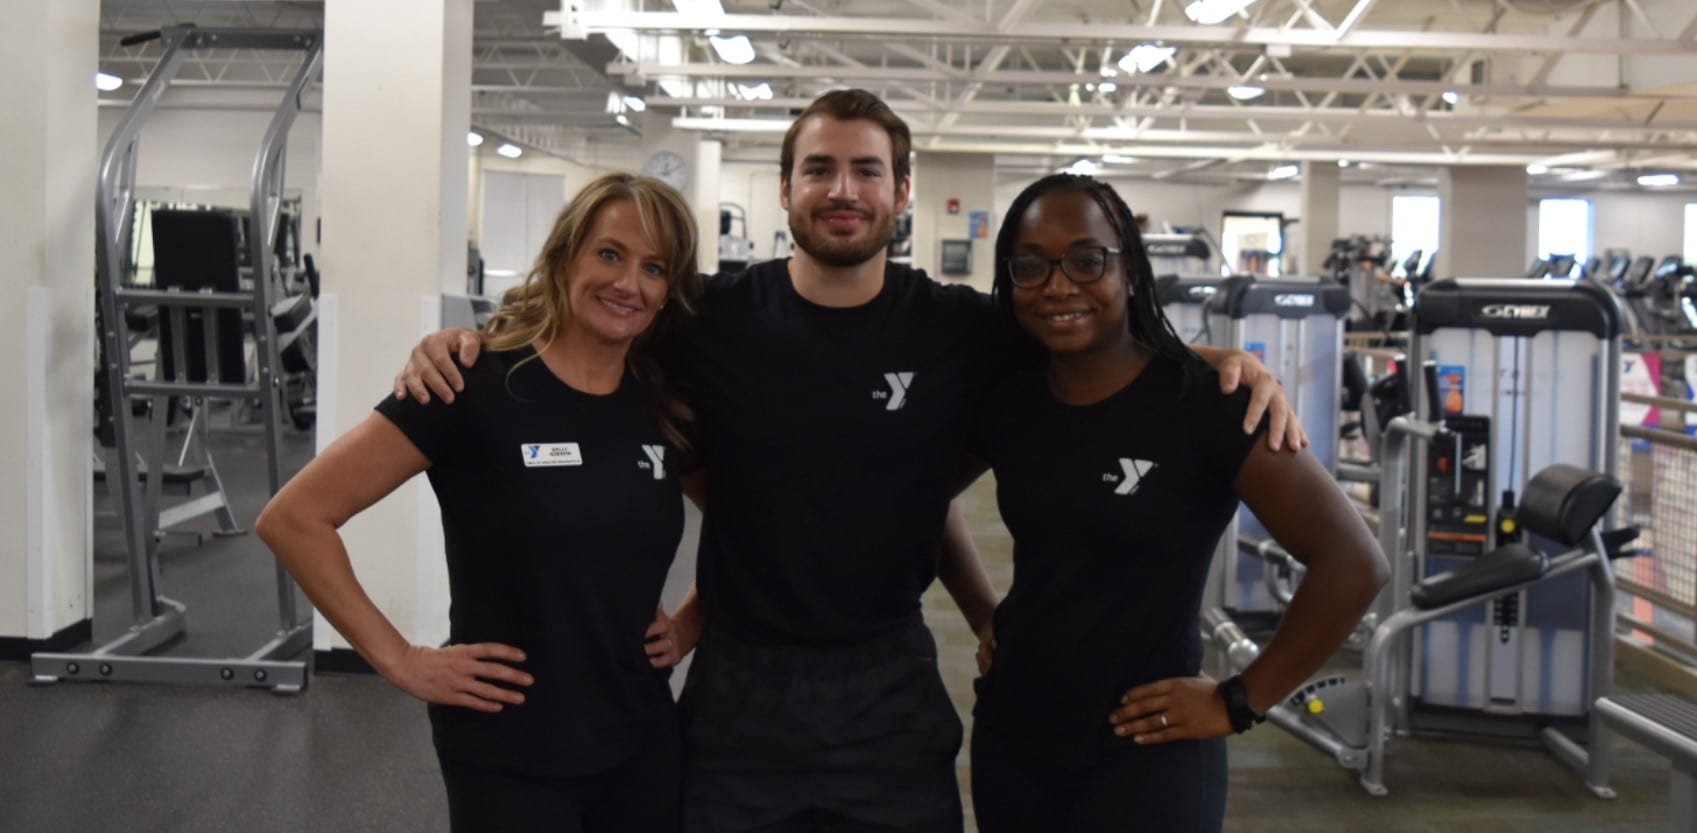 Ransburg YMCA Personal Trainers